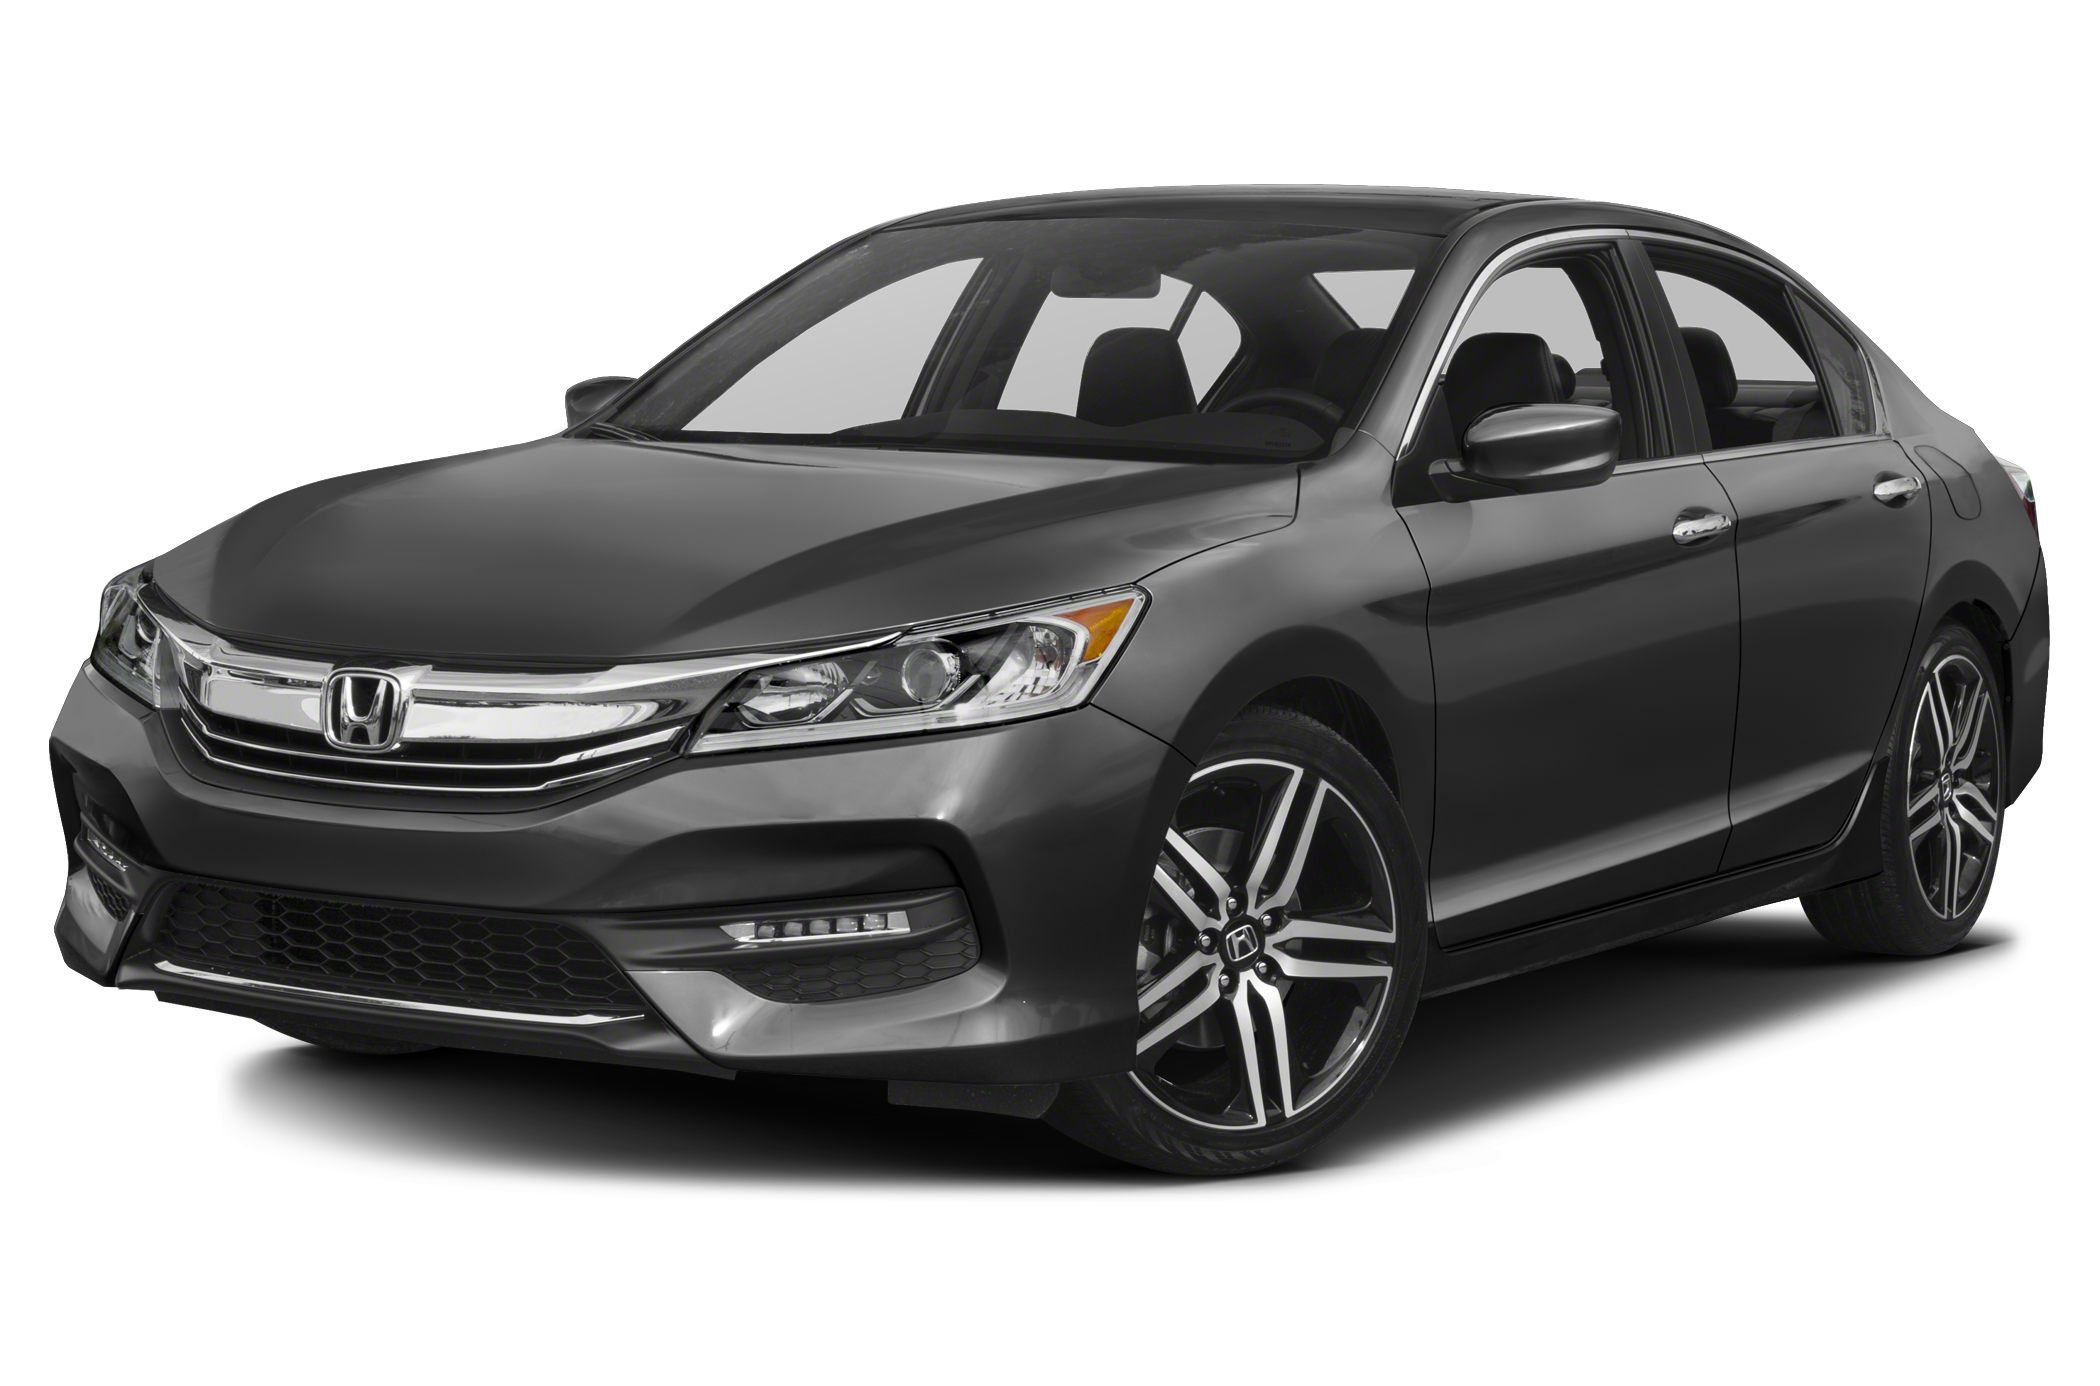 2016 Honda Accord Photos